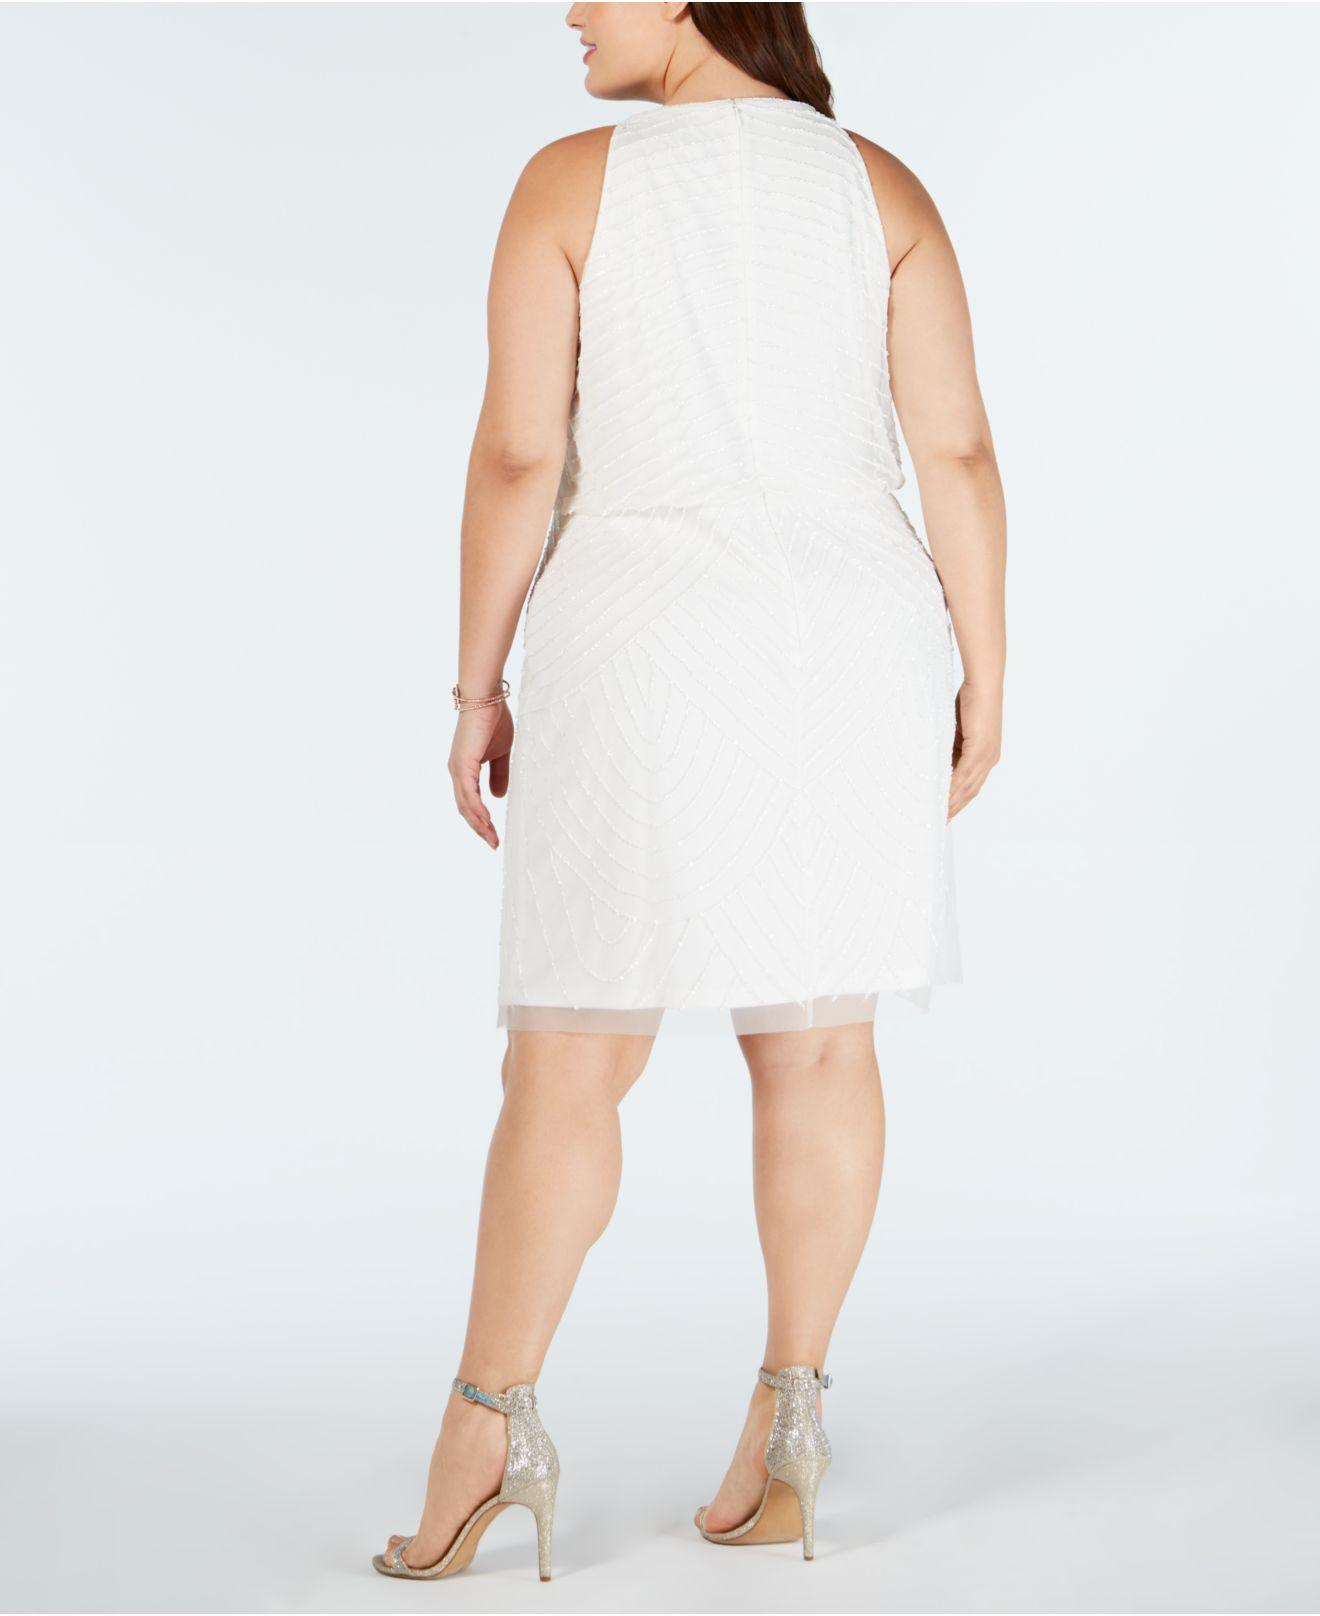 c9fe15e99d Lyst - Adrianna Papell Plus Size Embellished Blouson Sheath Dress in White